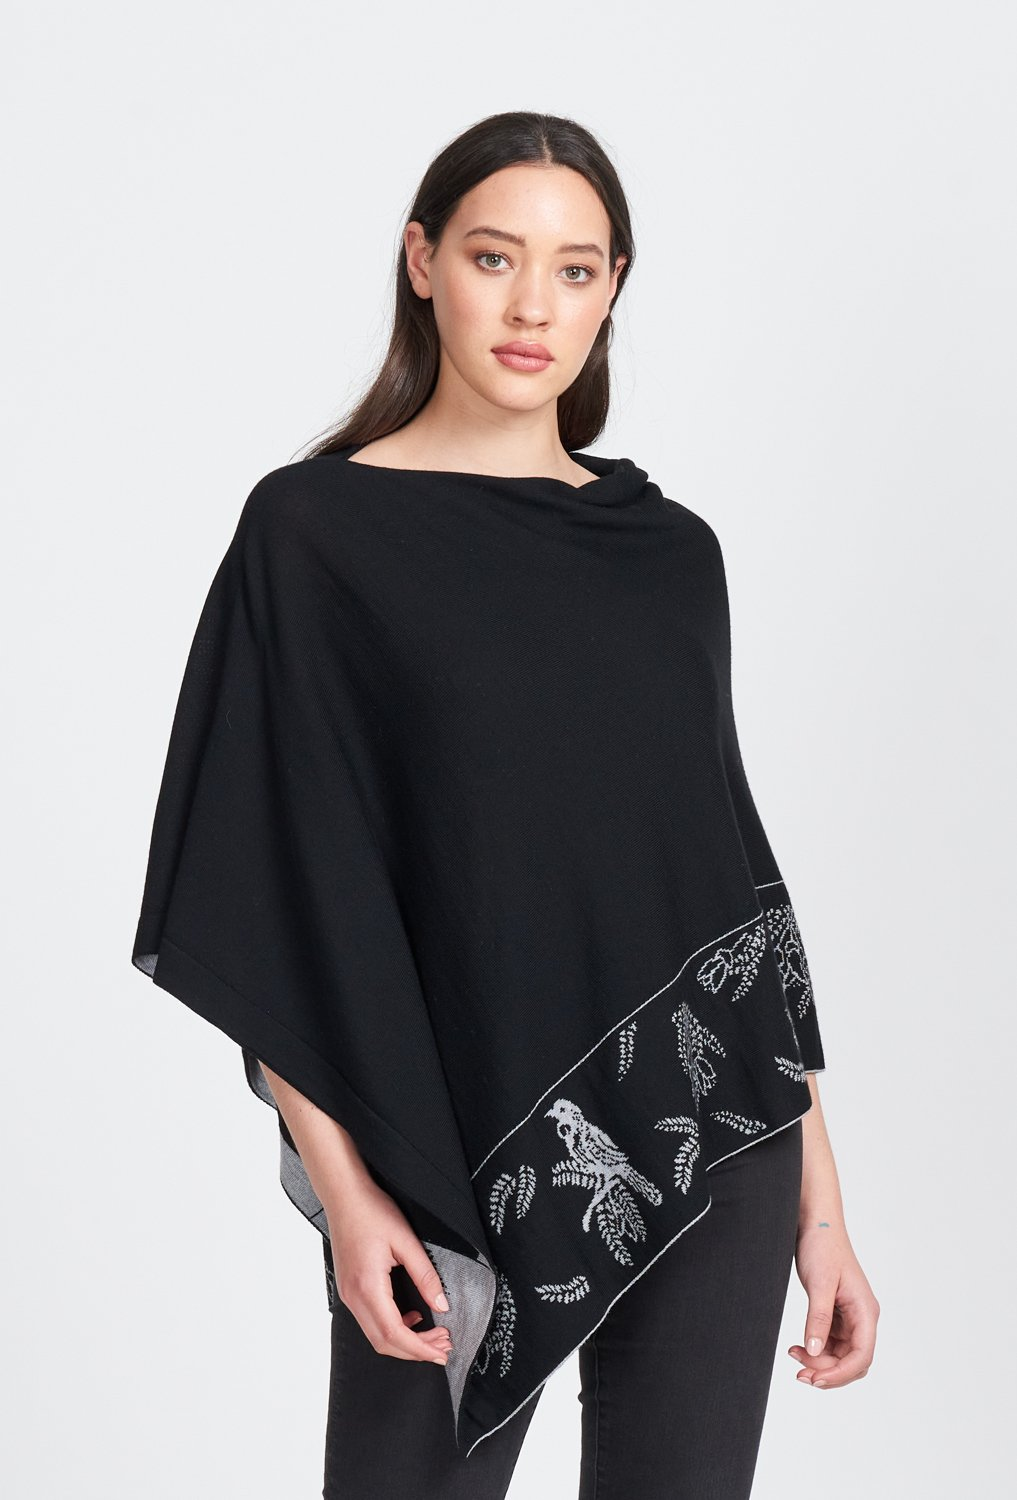 TUI PONCHO - Woolshed Gallery